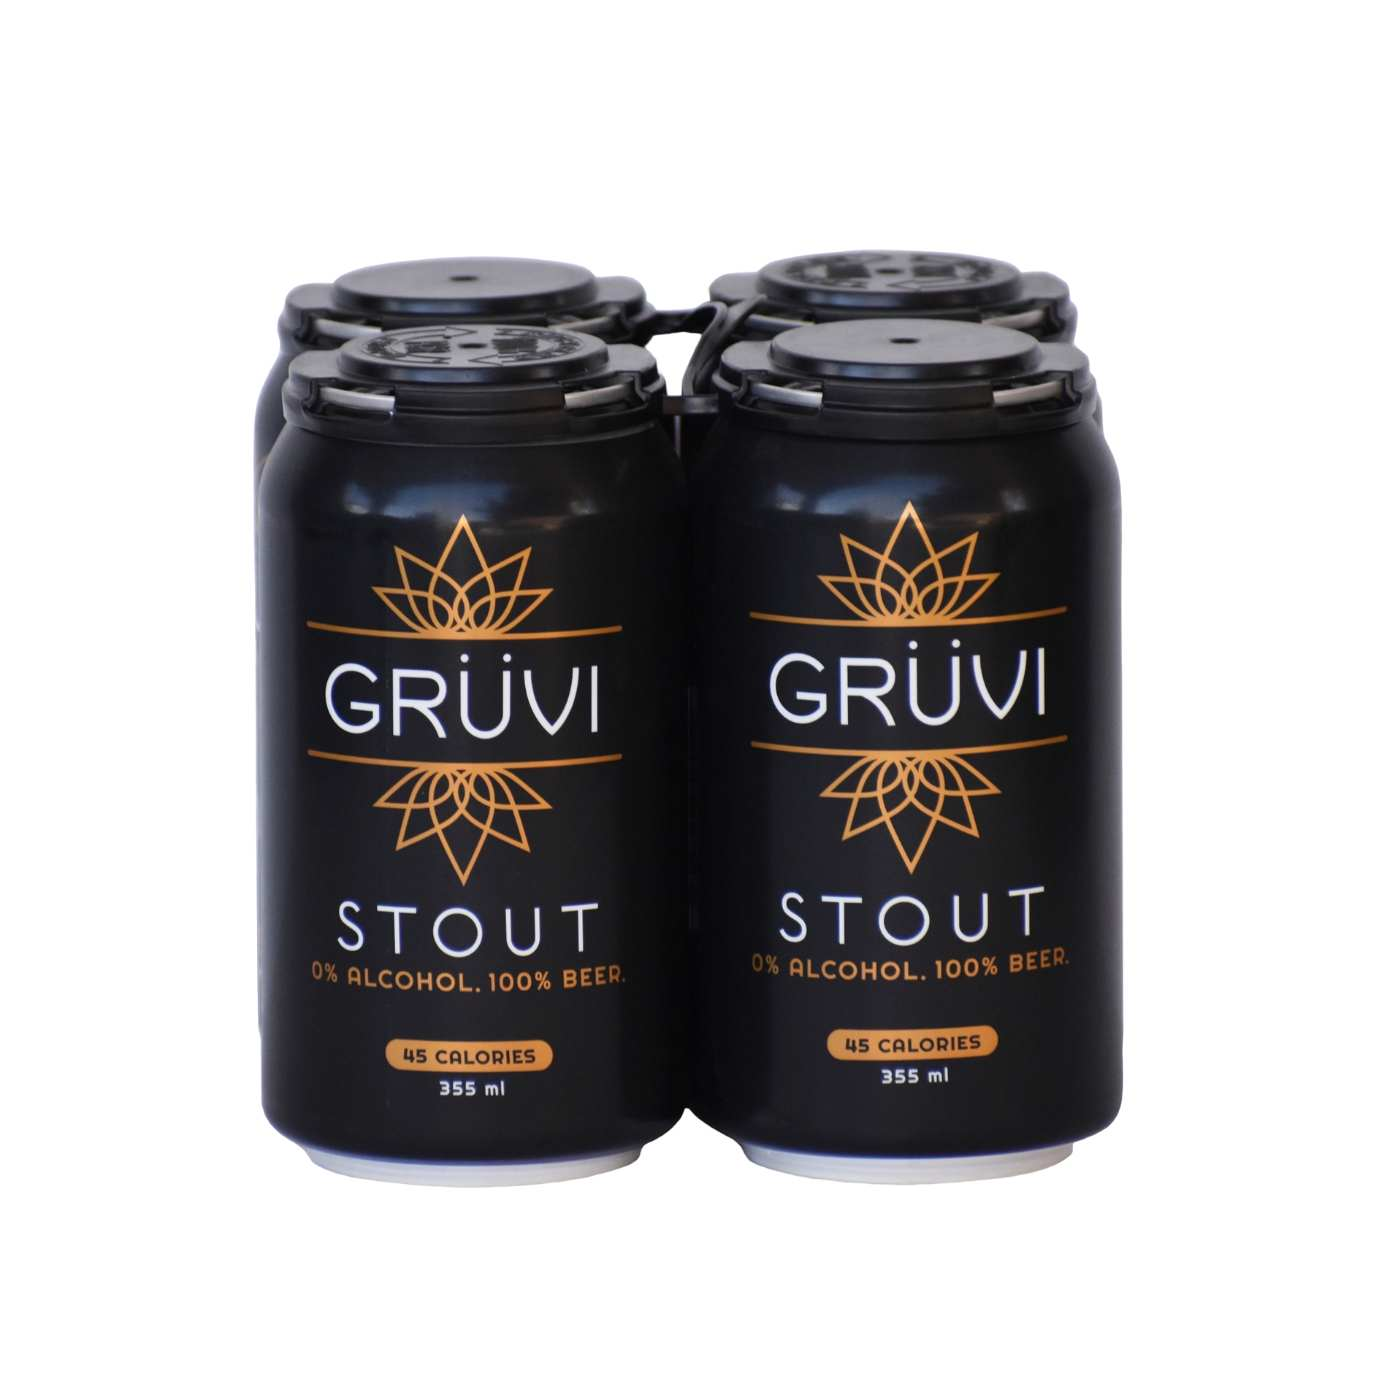 Gruvi Non-Alcoholic Stout Beer (4 pack)